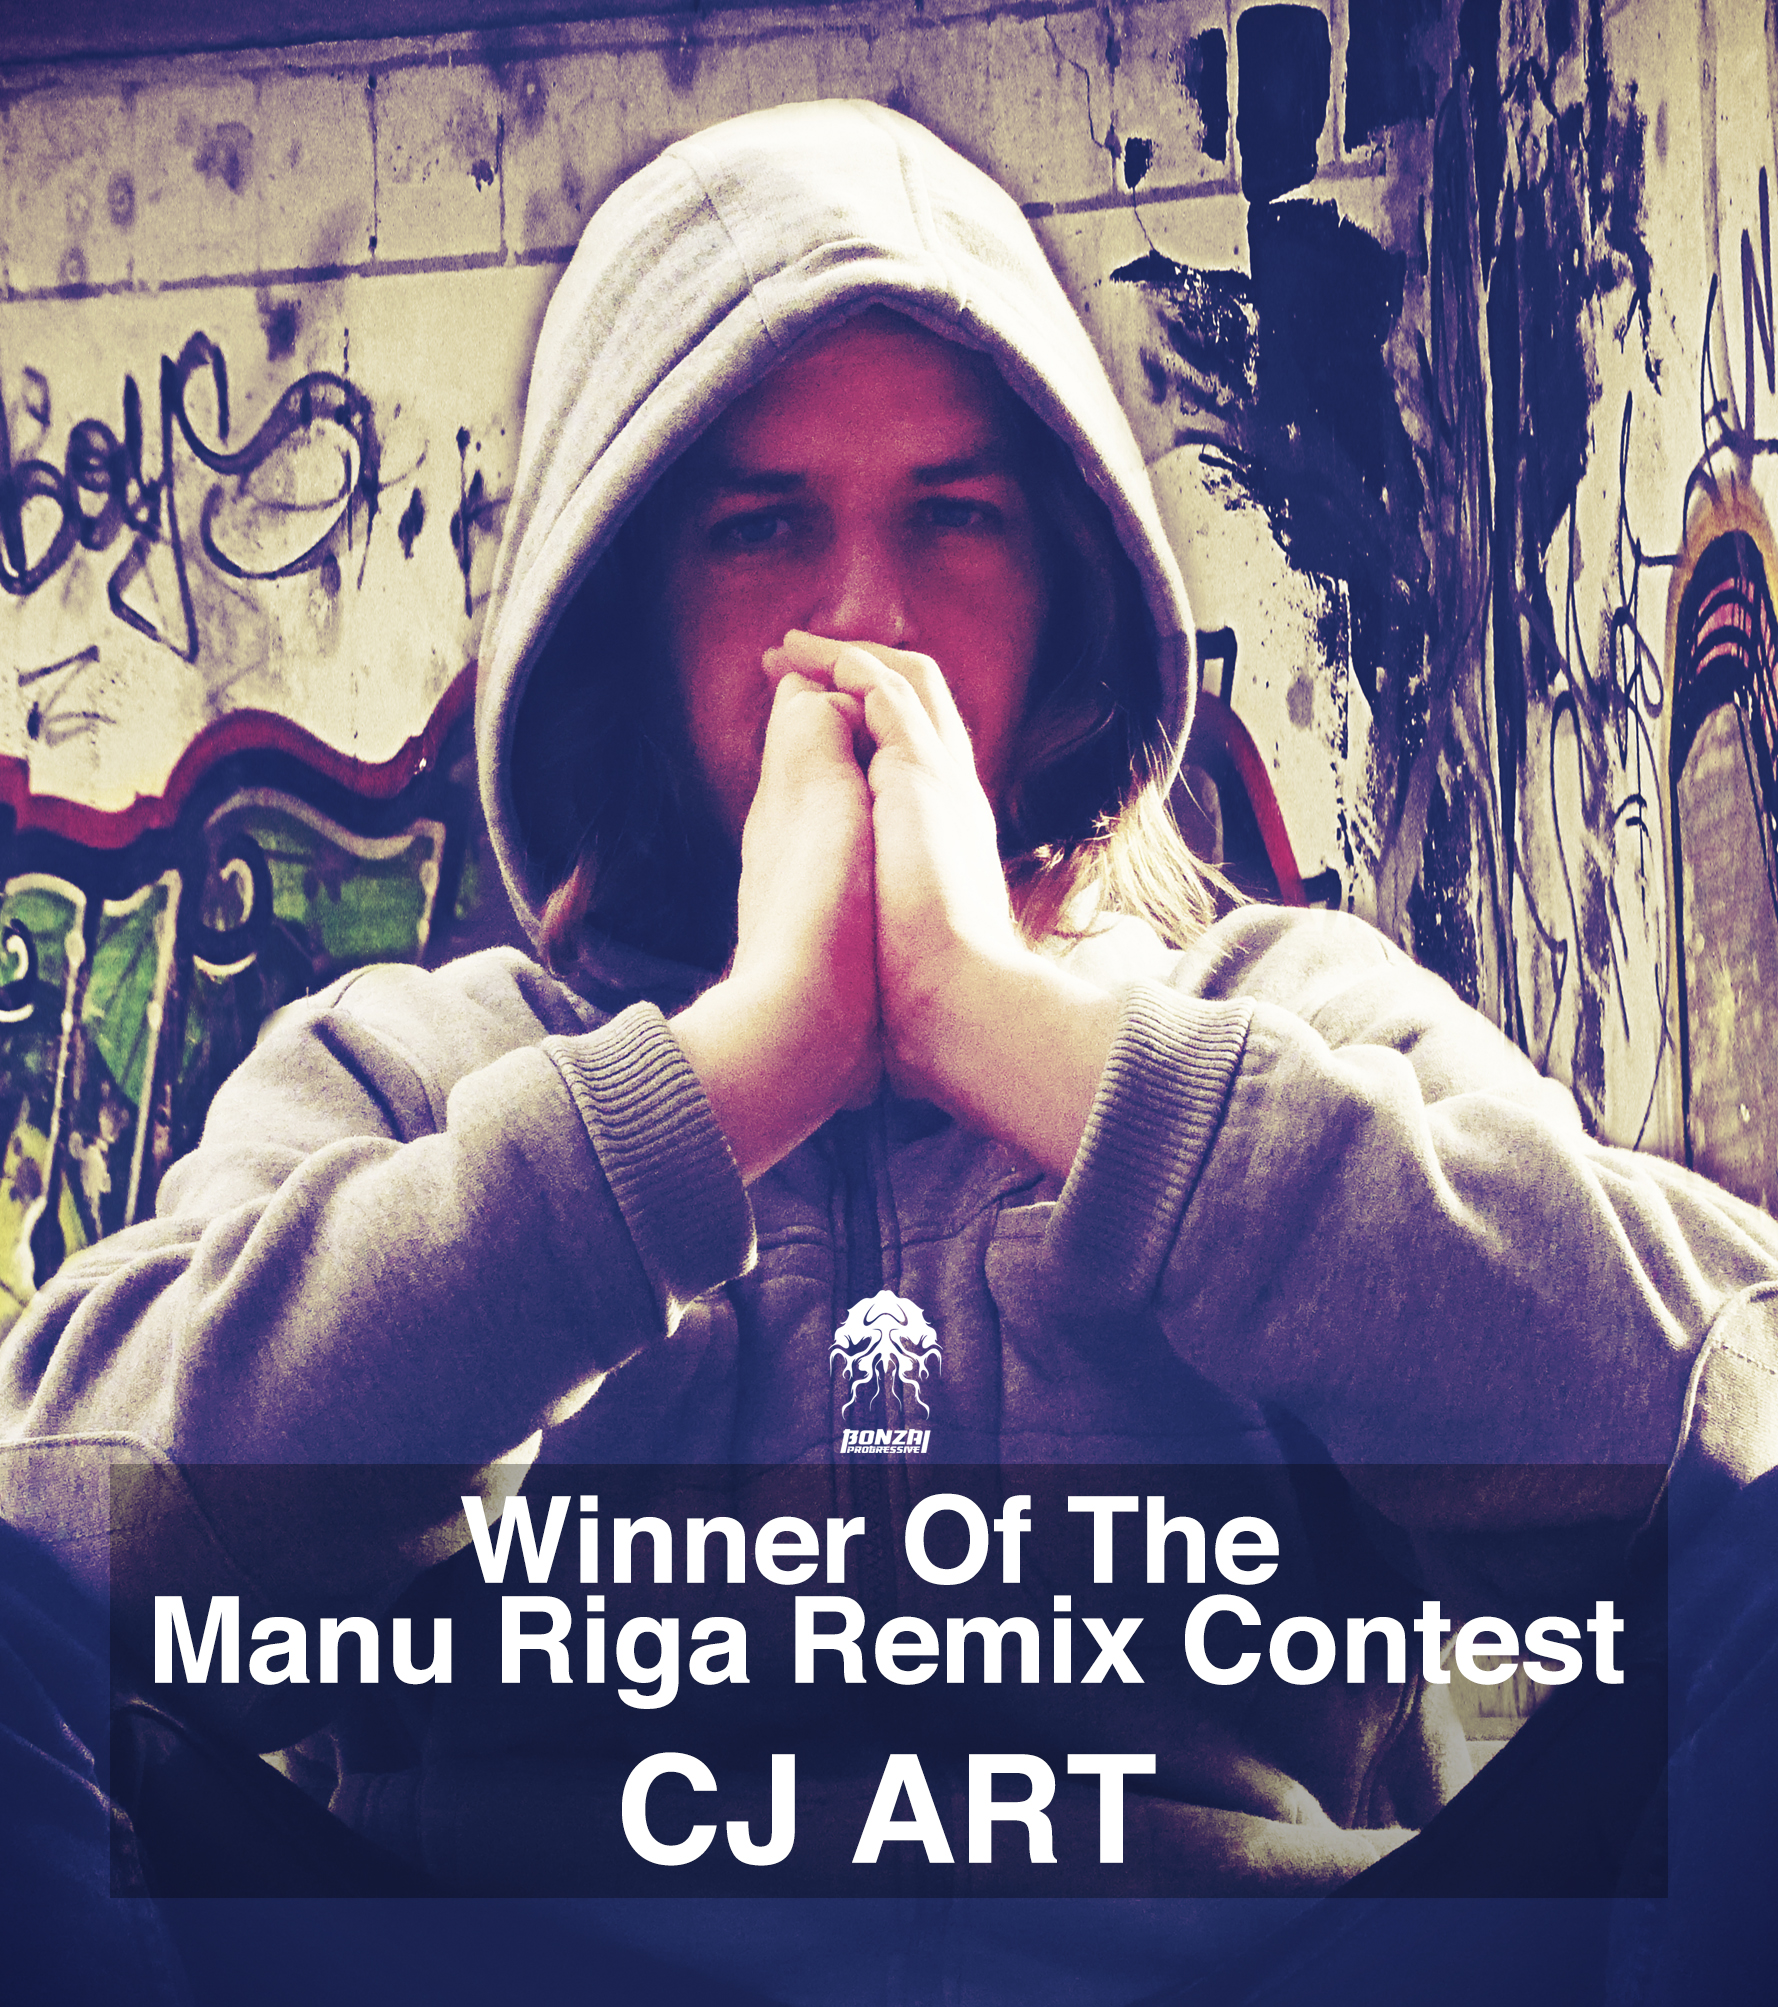 WINNER OF THE MANU RIGA REMIX CONTEST